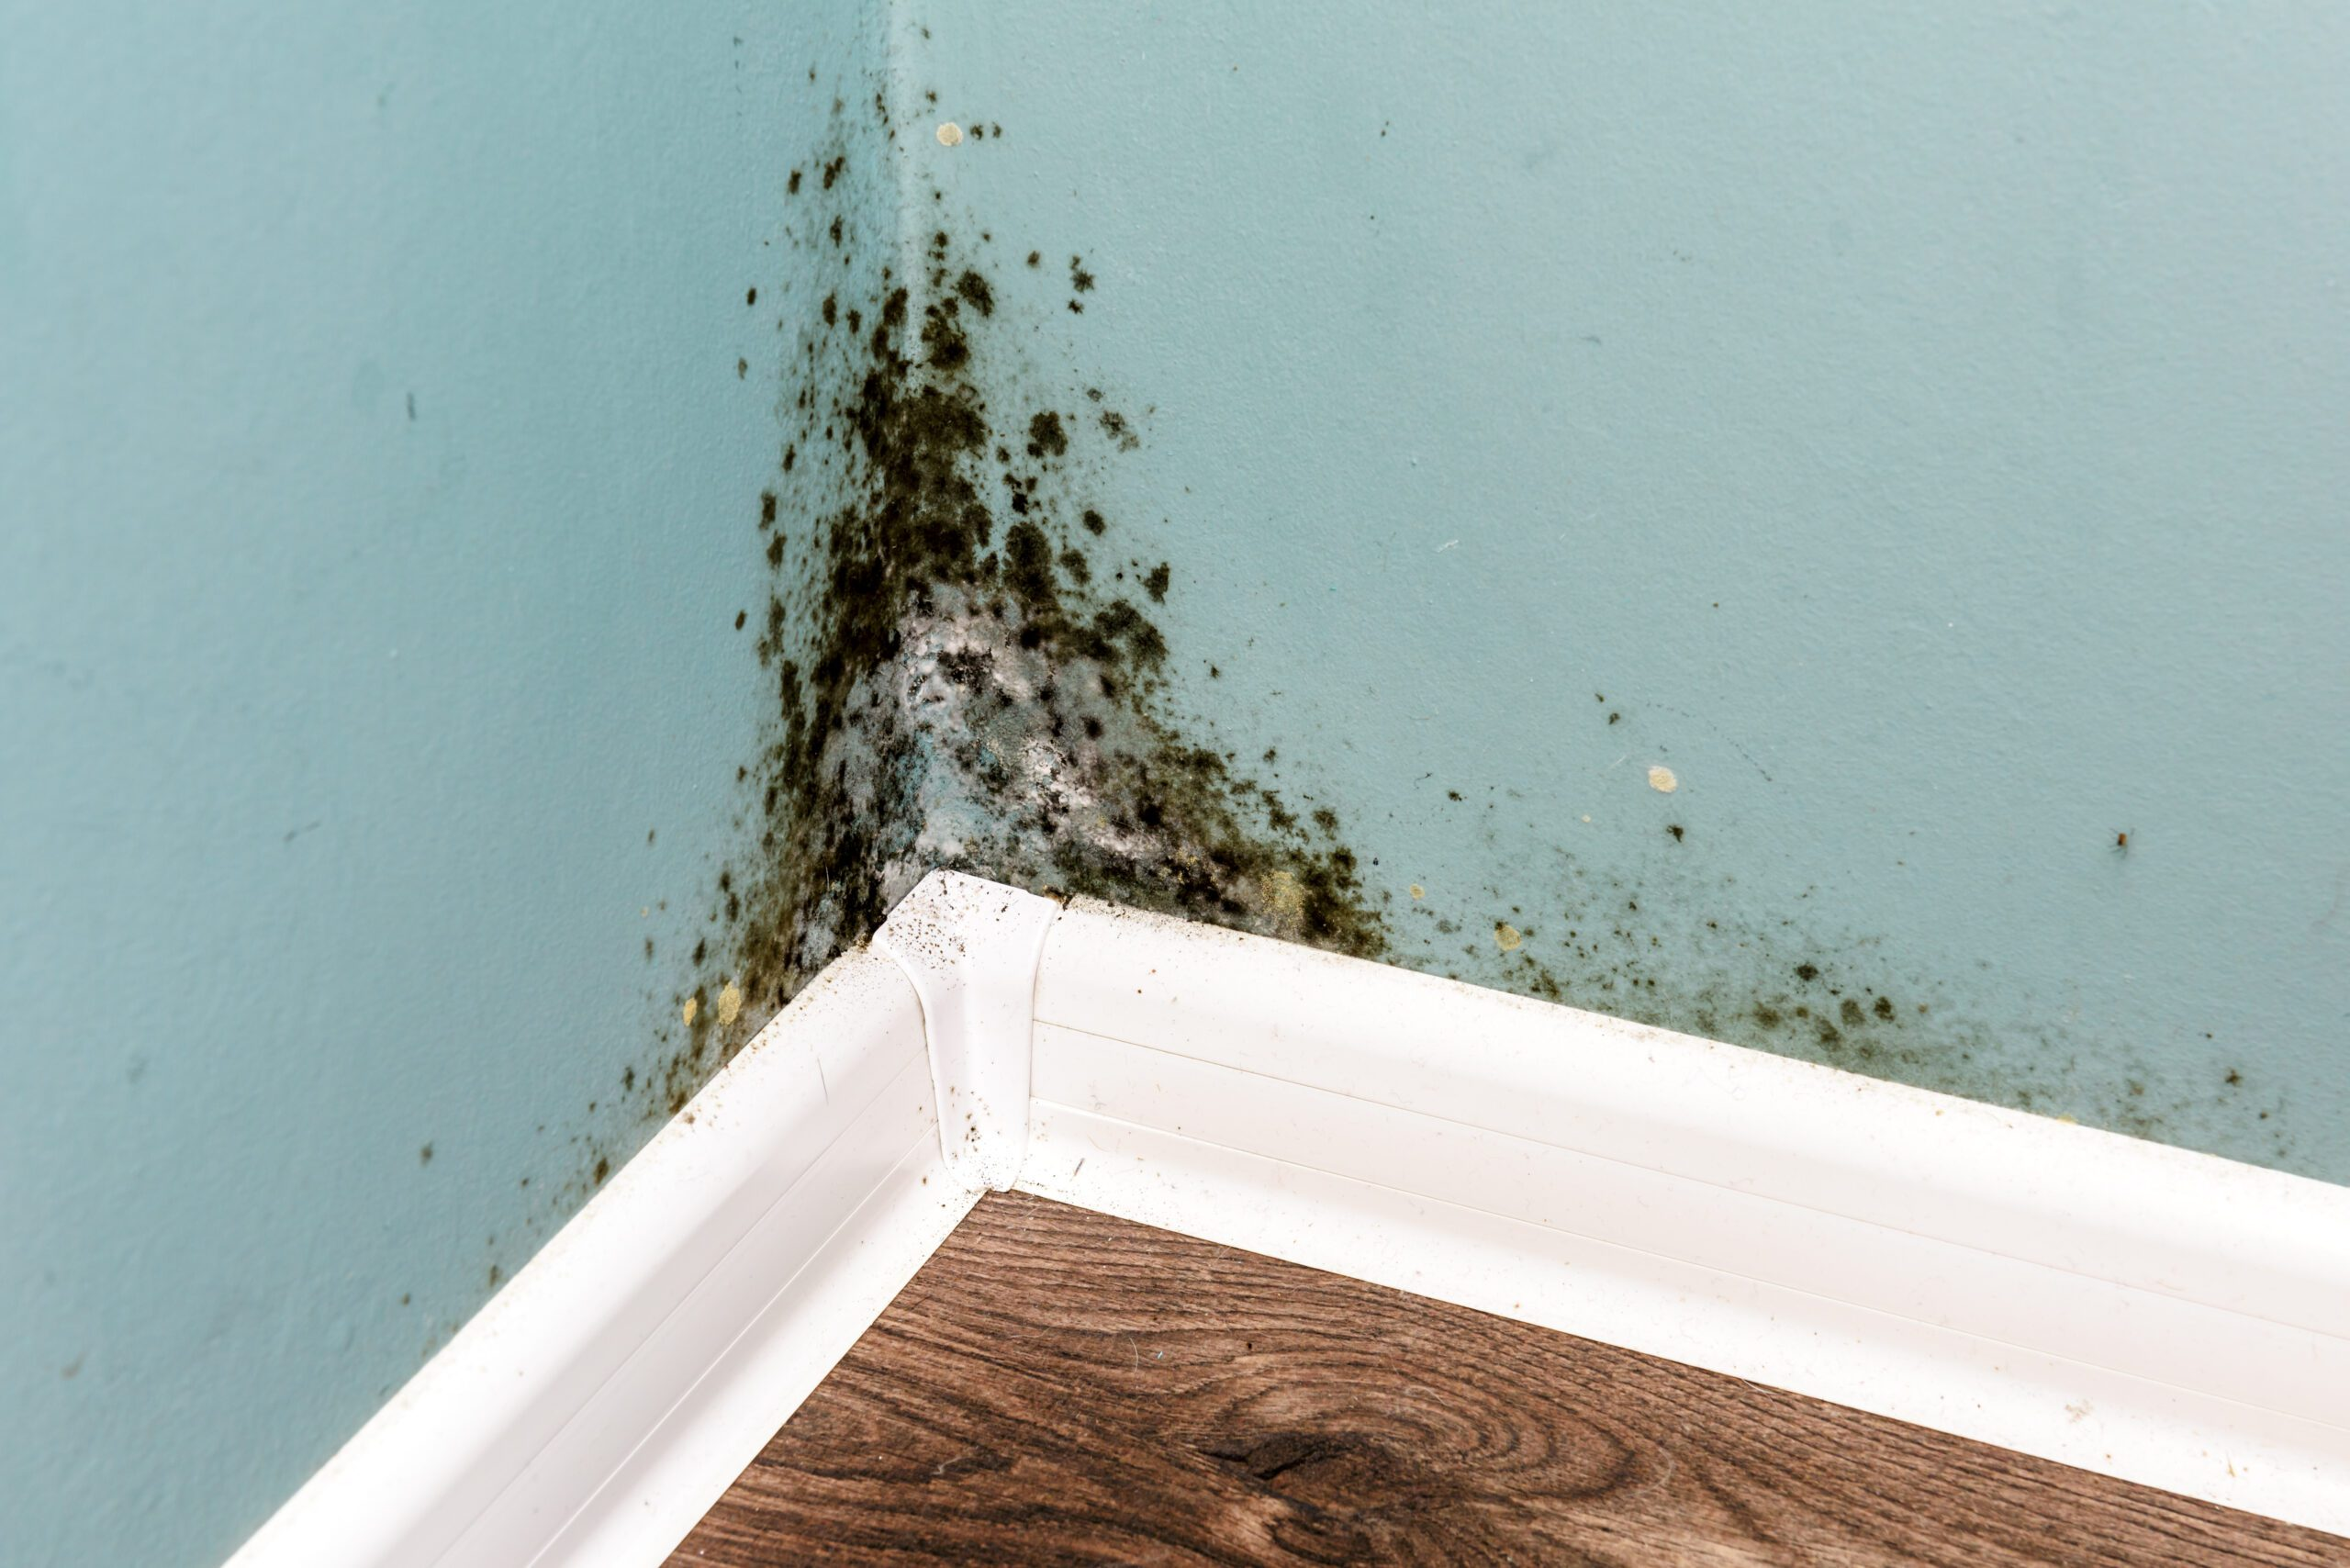 mold is sure to follow after new or old water damages